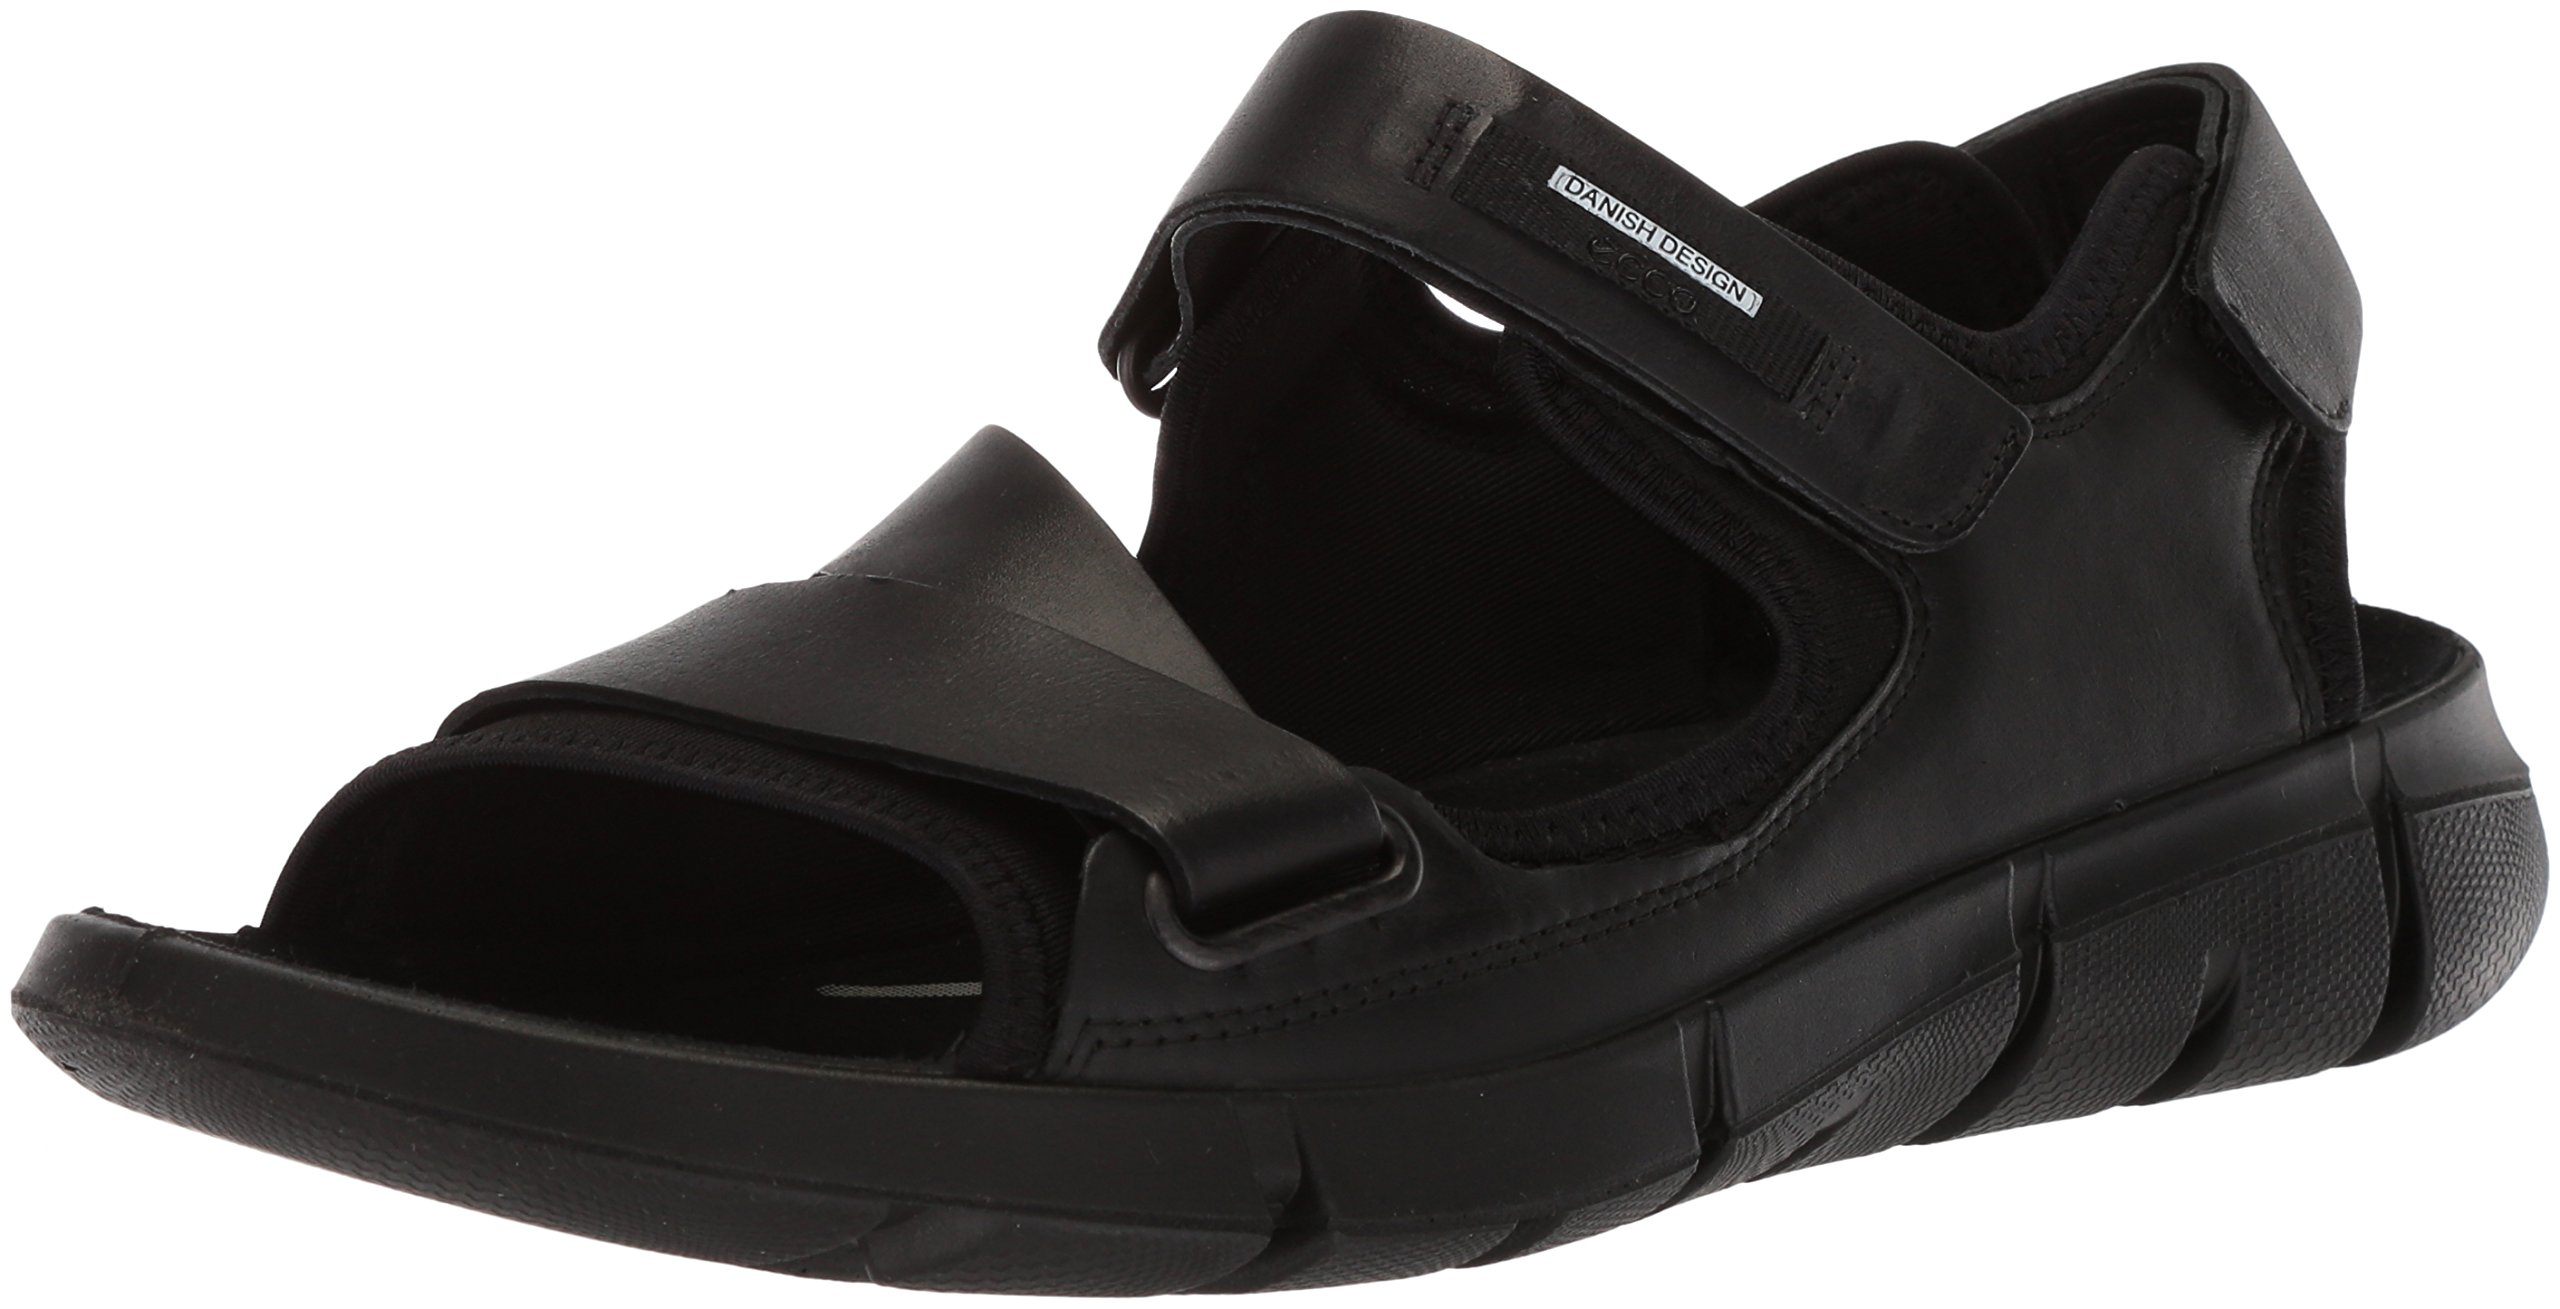 ECCO Men's Intrinsic 2 Sport Sandal Black, 44 M EU (10-10.5 US)